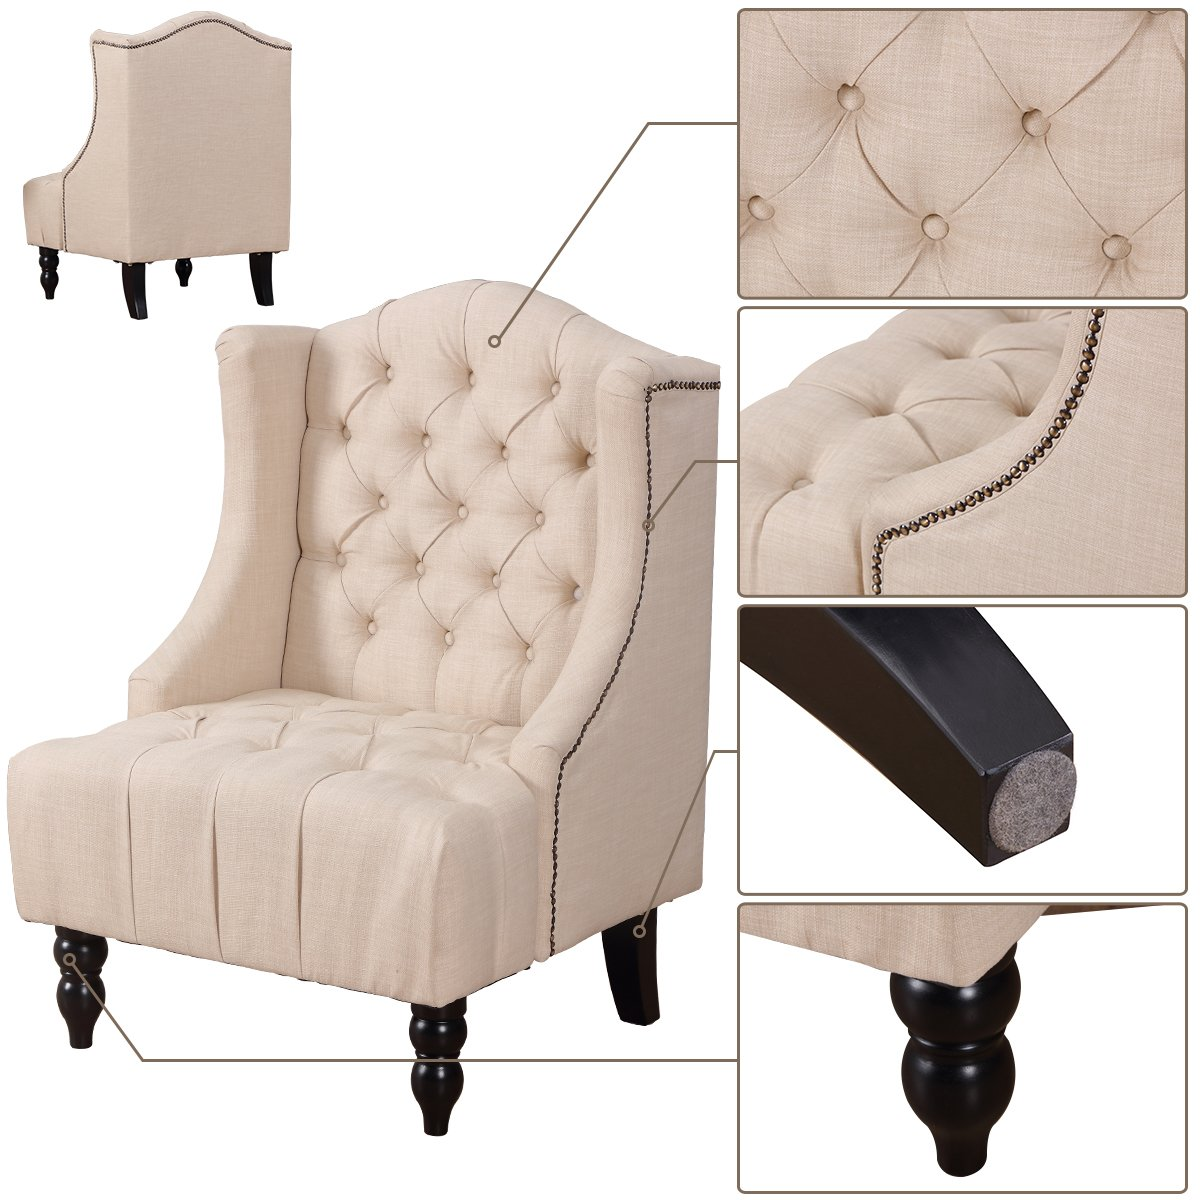 Giantex Sofa Tufted Tall Wingback Vintage Tufted Fabric Accent Chair Home Furniture Nailhead Armchair (Beige)